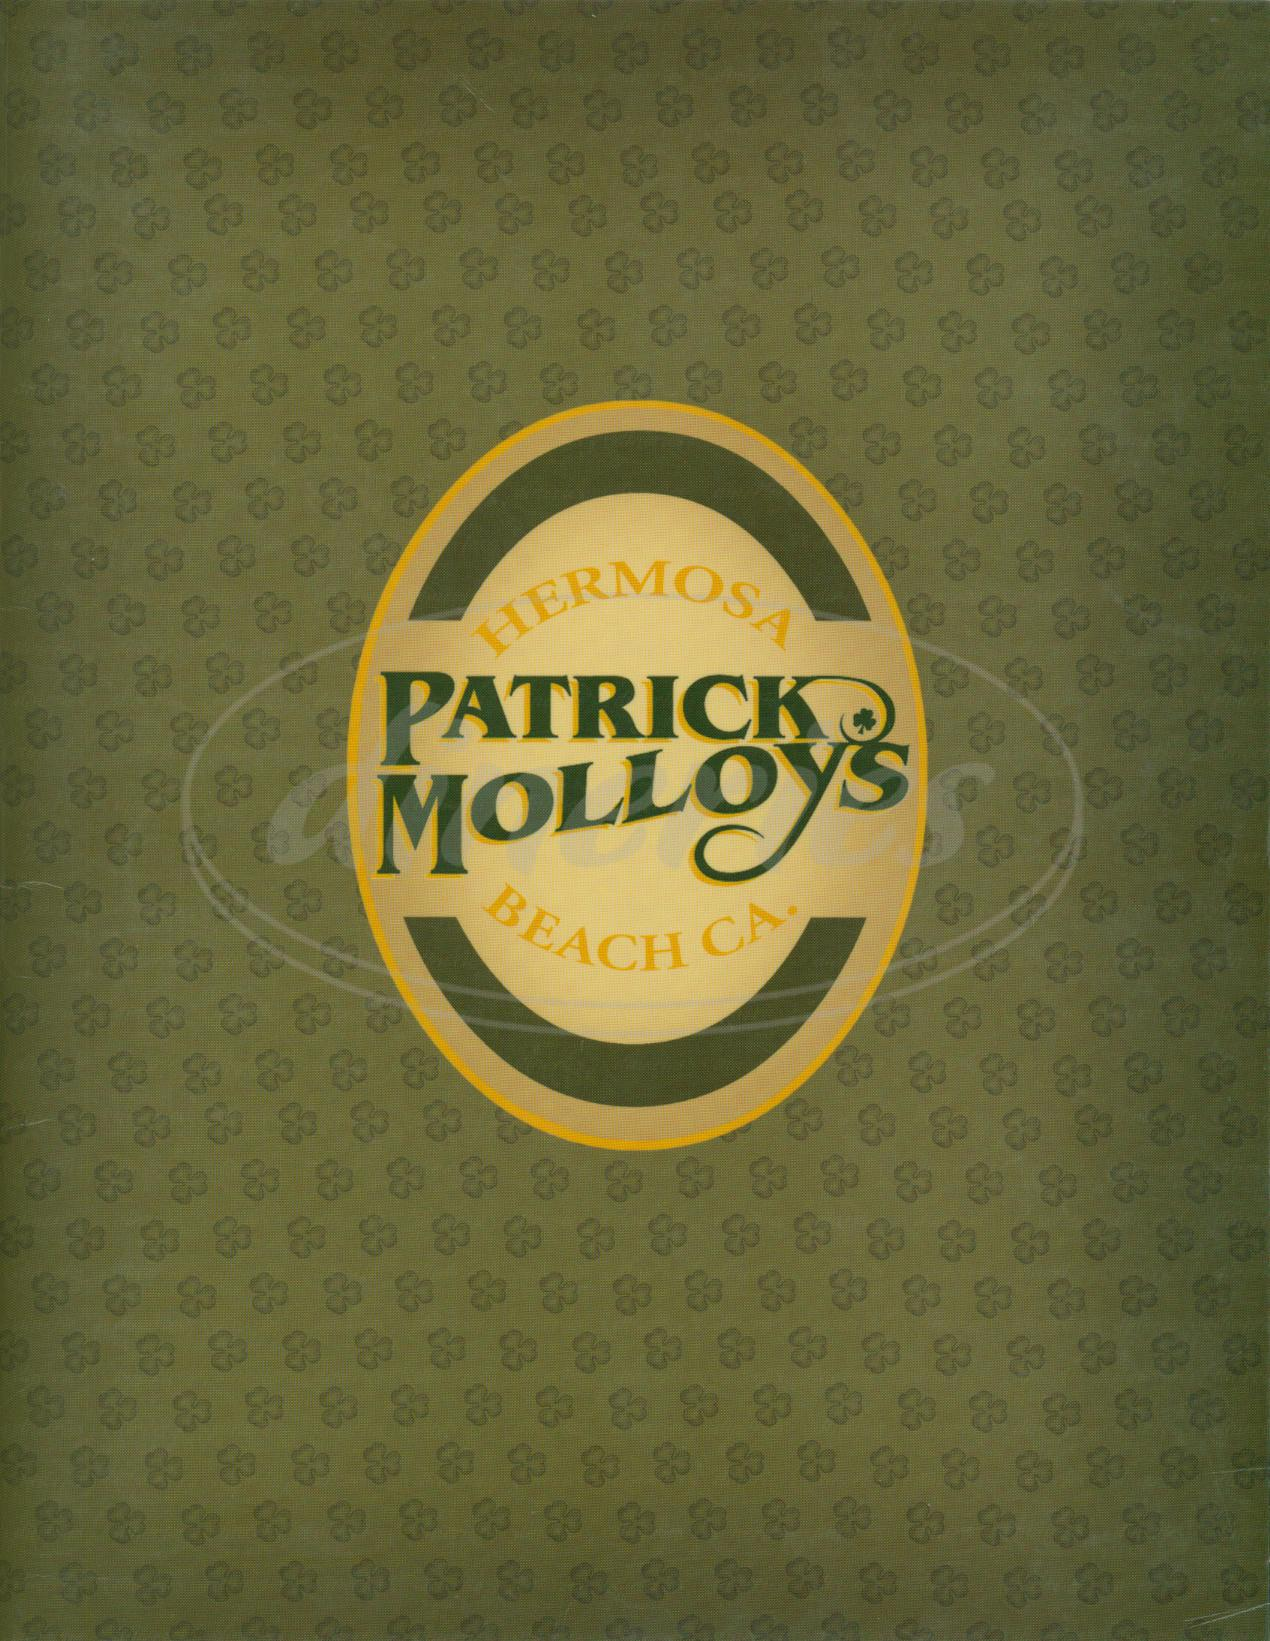 menu for Patrick Molloys